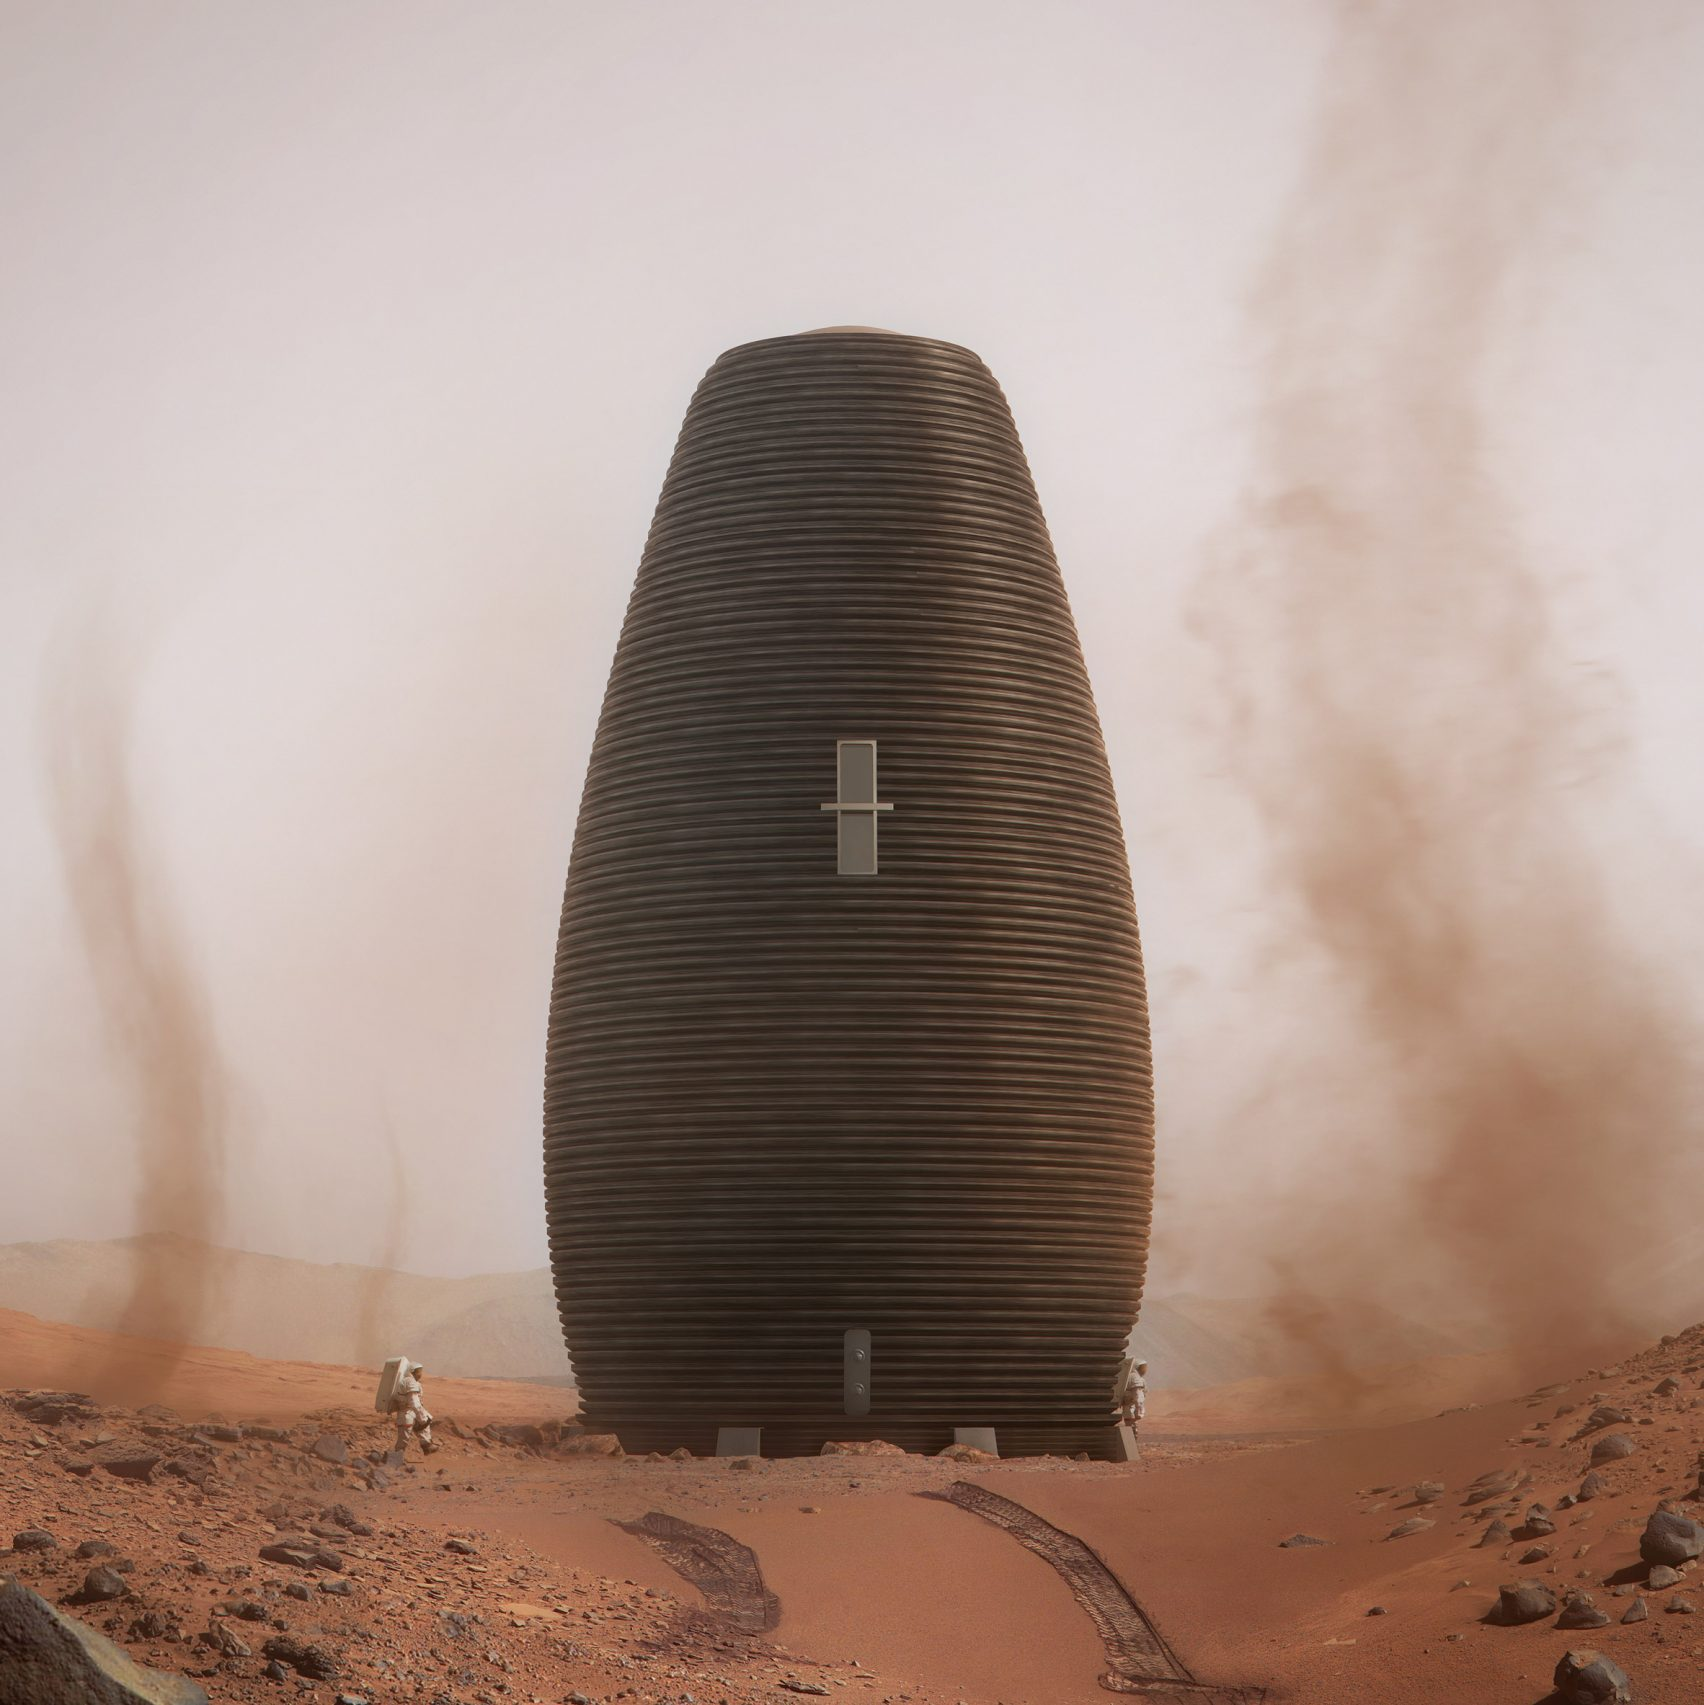 NASA Announces 3D Printed Habitat Competition Winners